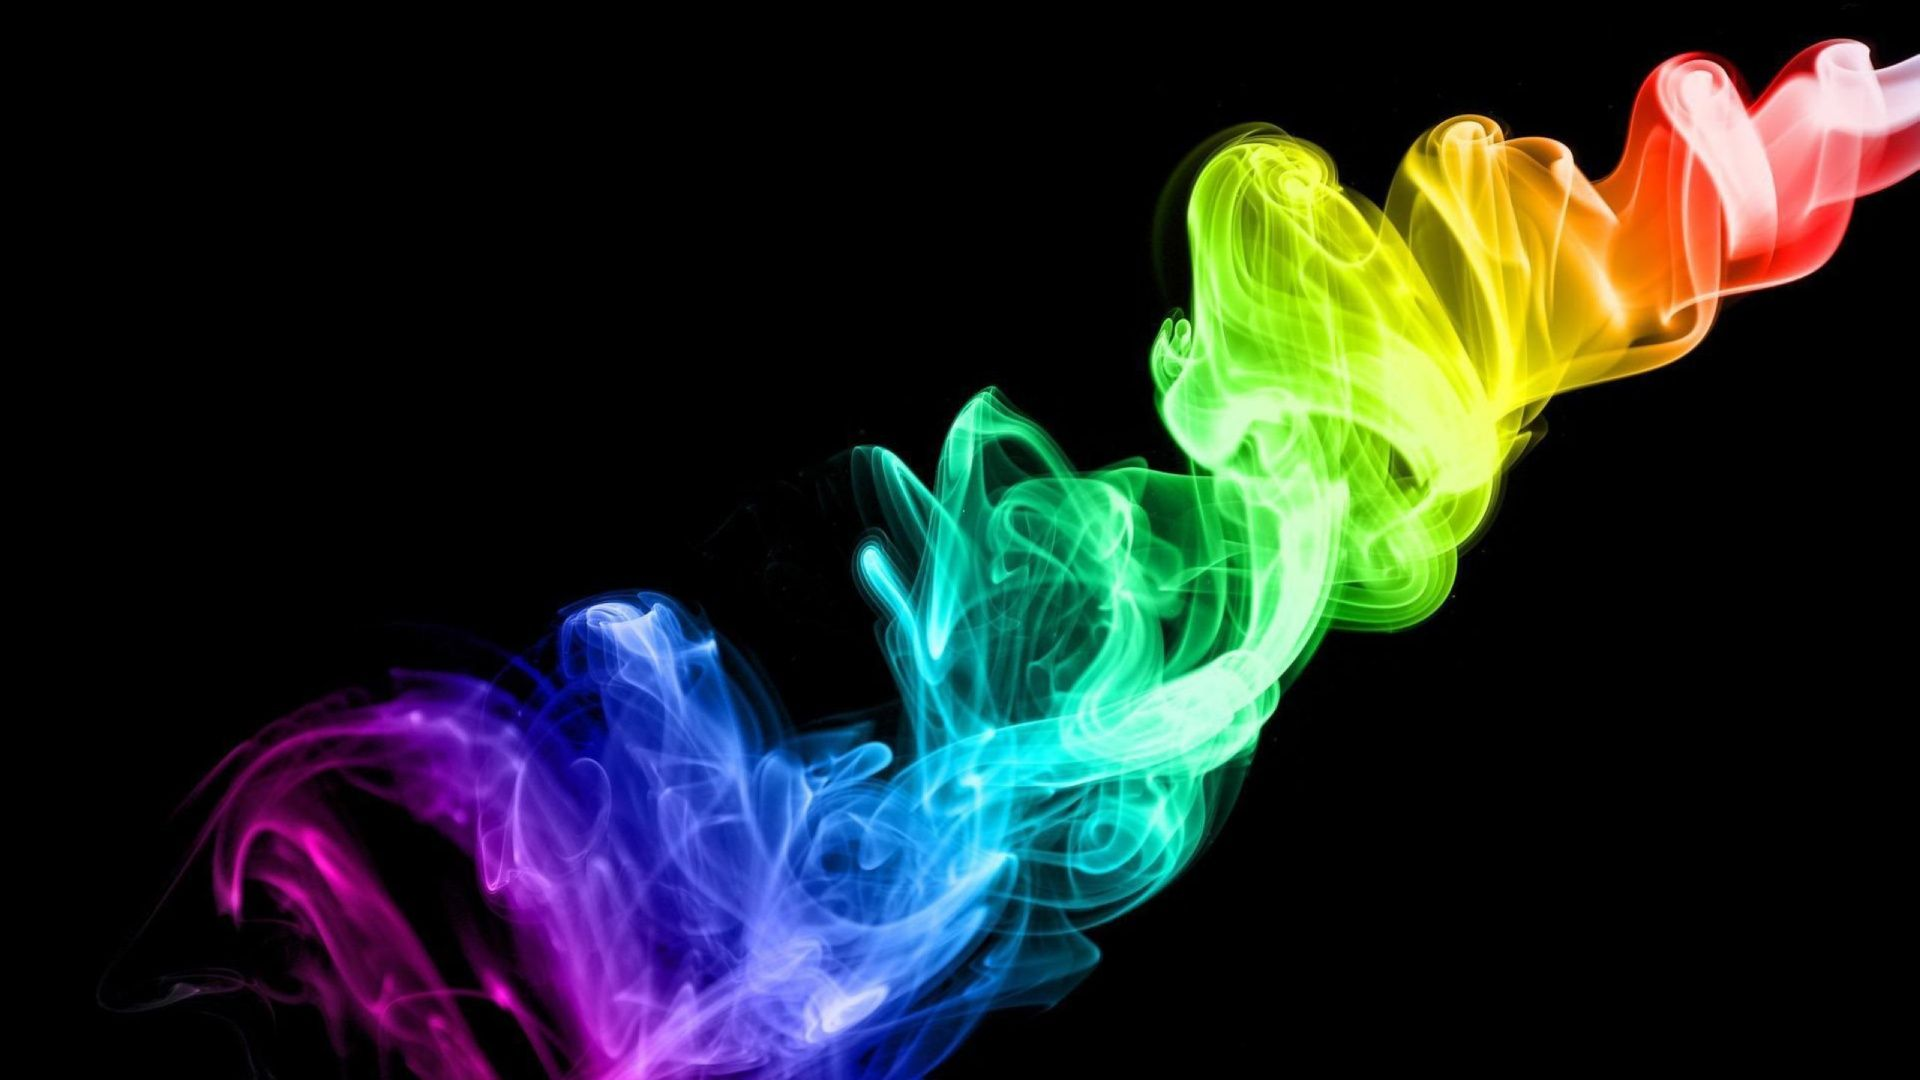 Colorful 3D Abstract Smoke wallpaper